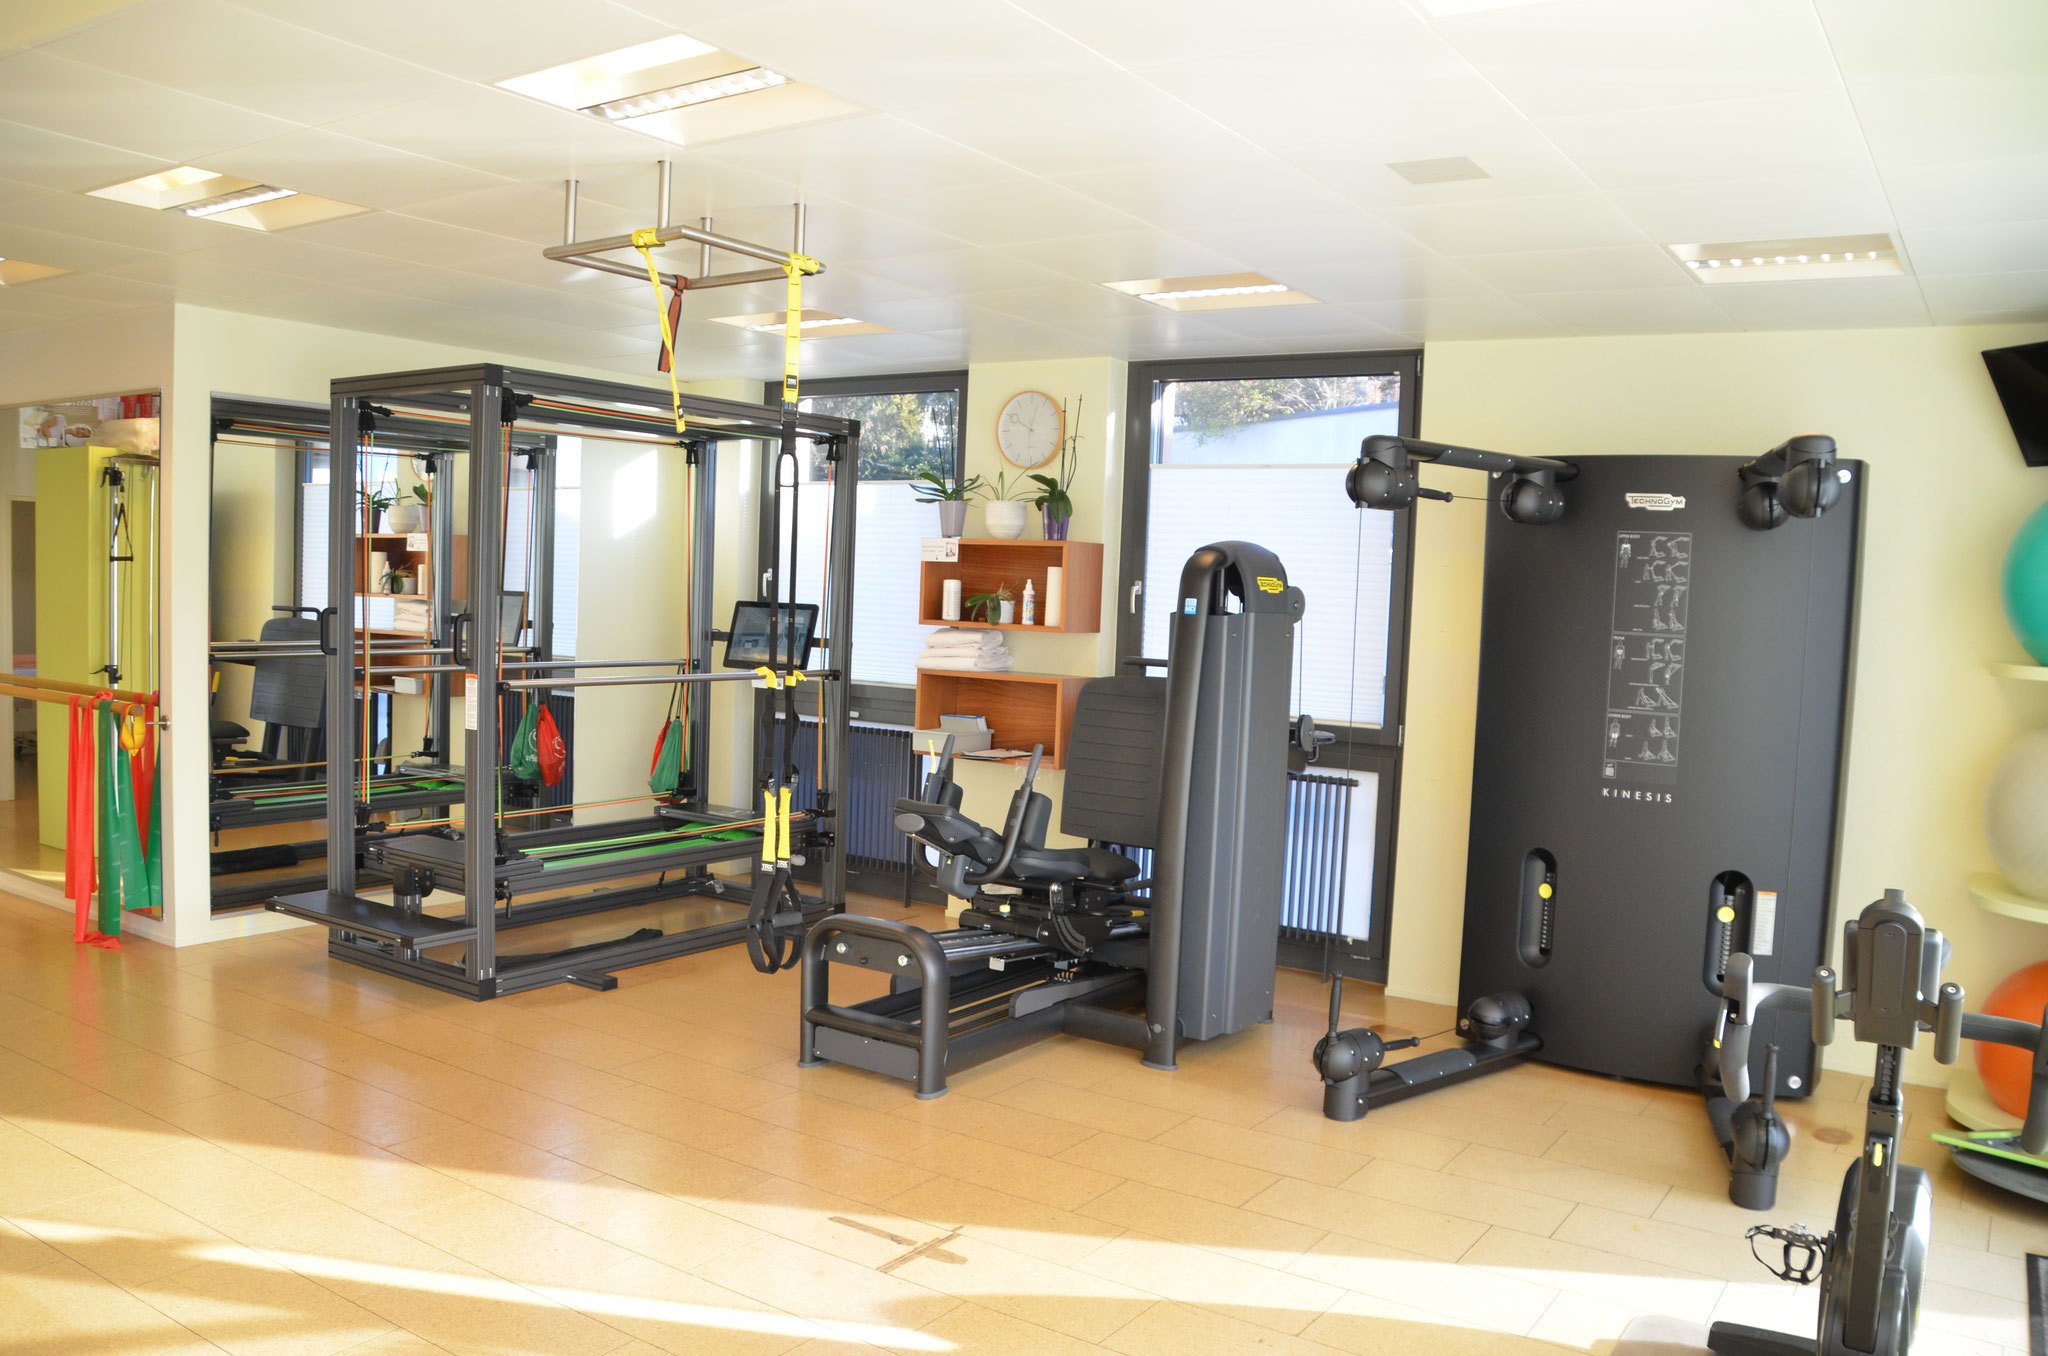 Trainingsraum, Senso Pro und Legg Press